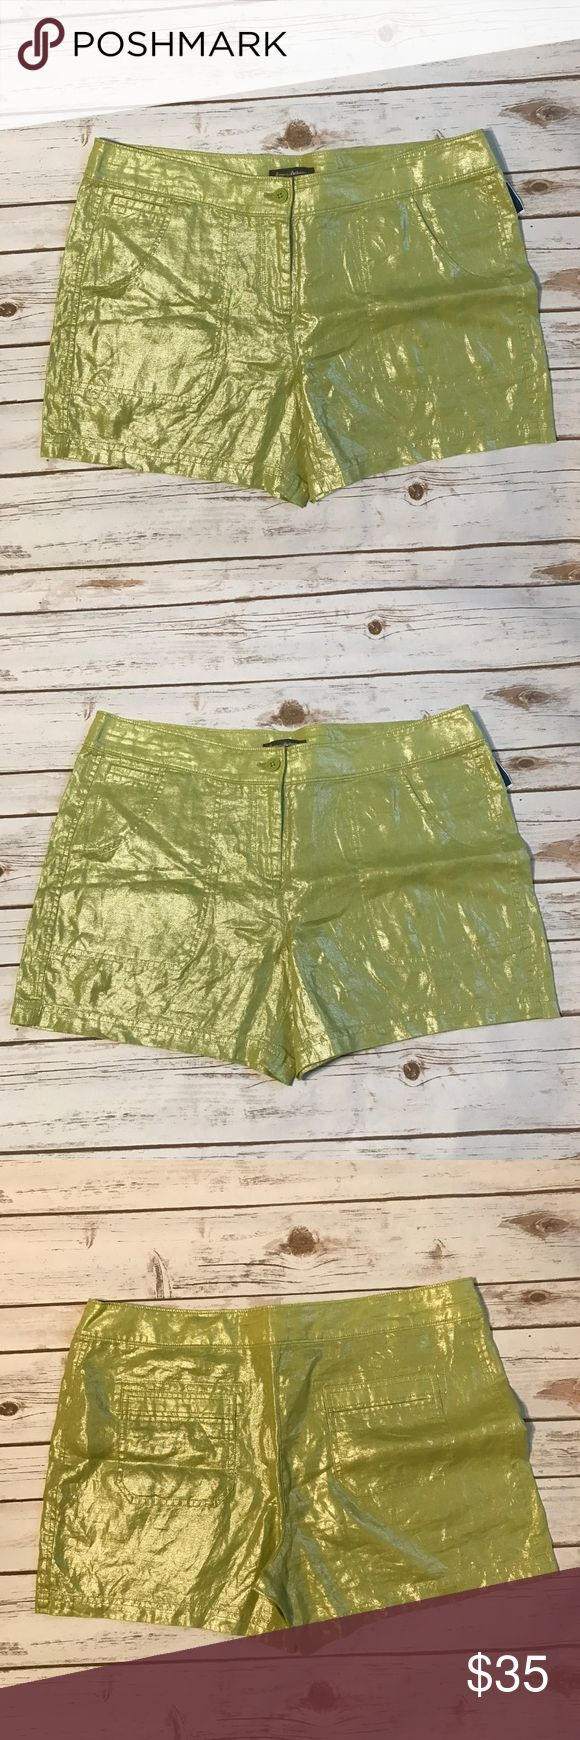 "Tommy Bahamas Metallic Green Shorts NWT Tommy Bahamas metallic lime green shorts size 10. No rips or stains. Measurements for flat lay: waist 48"" outseam 15.5"" inseam 5"" rise 11"" Tommy Bahama Shorts"